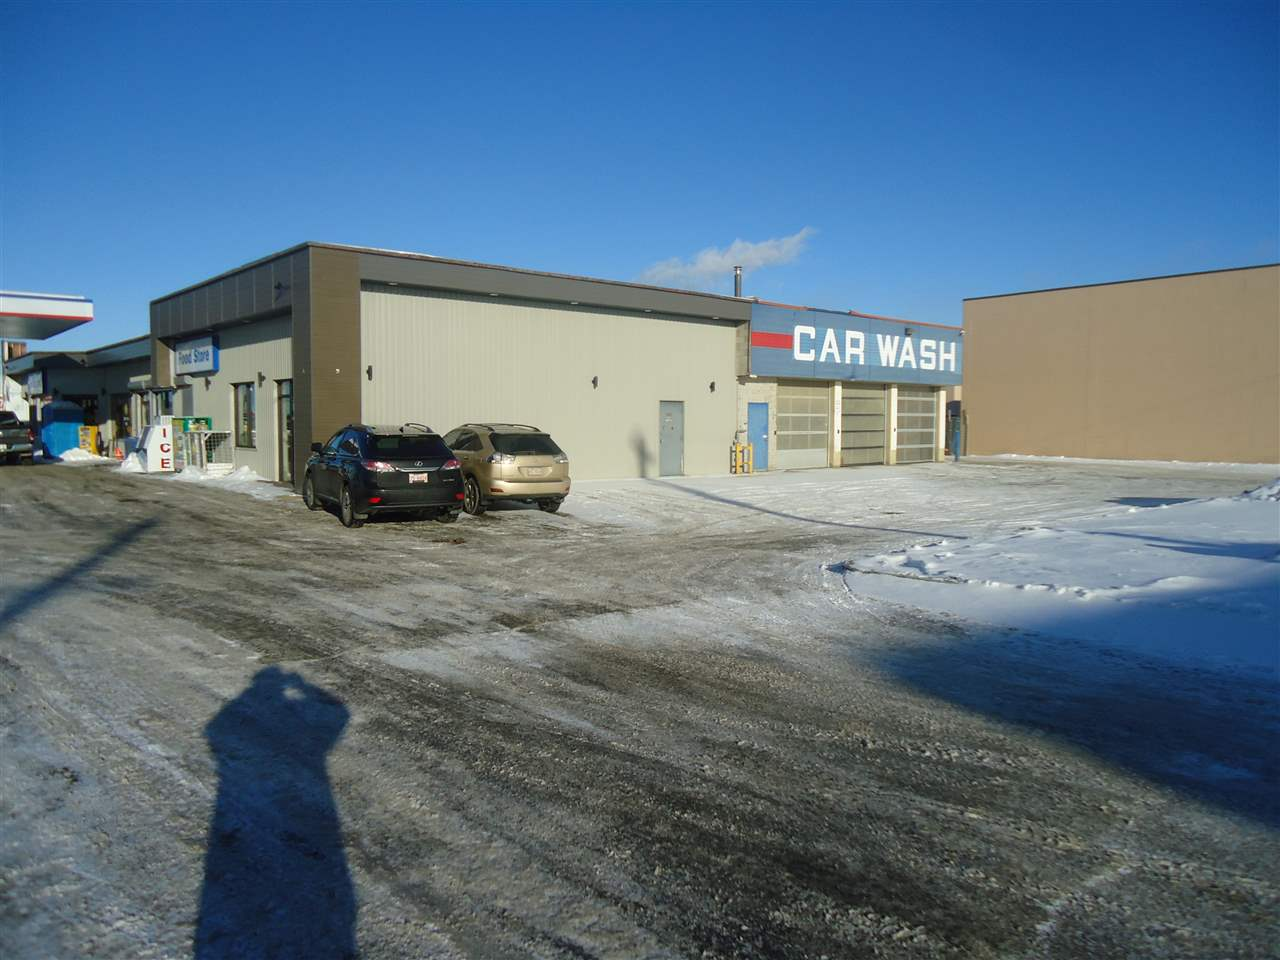 Excellent space for Auto/Trailer rental.  Office ready to finish to tenant's use.  Up to 15 parking display stalls included in rental rate.  30,000/day traffic count.  Additional parking available at a negotiated surcharge.